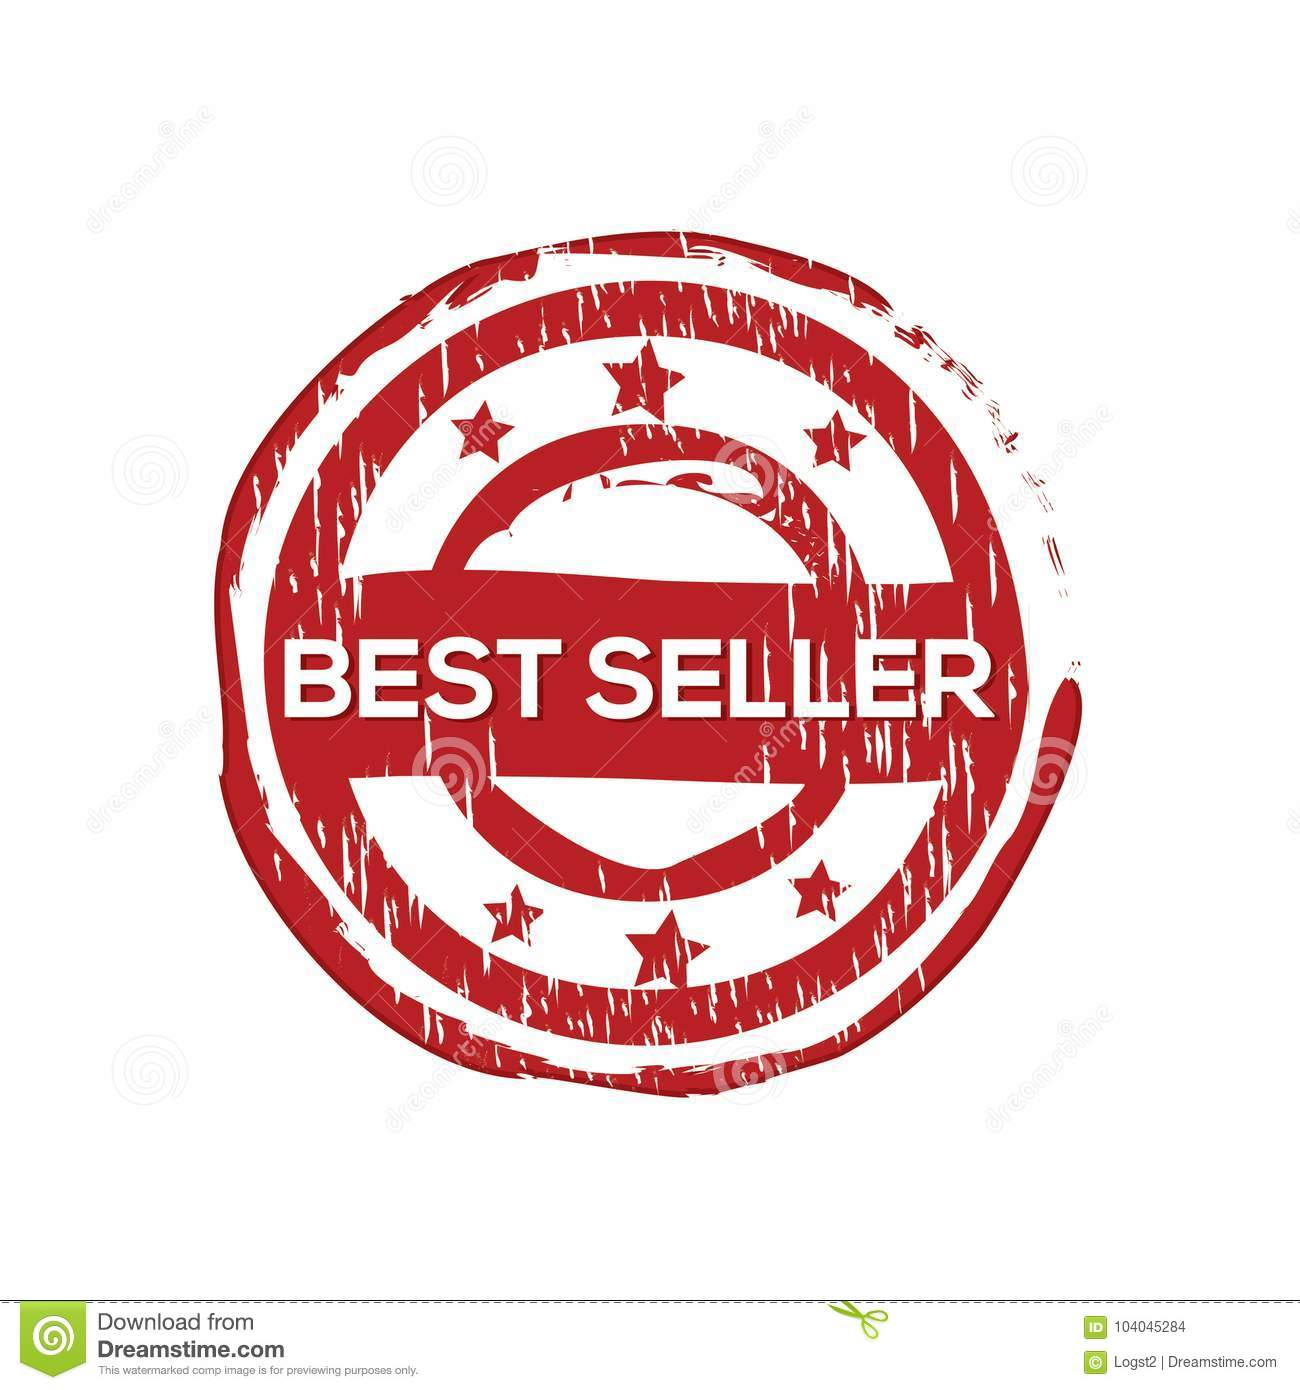 `Best seller` vector rubber stamp